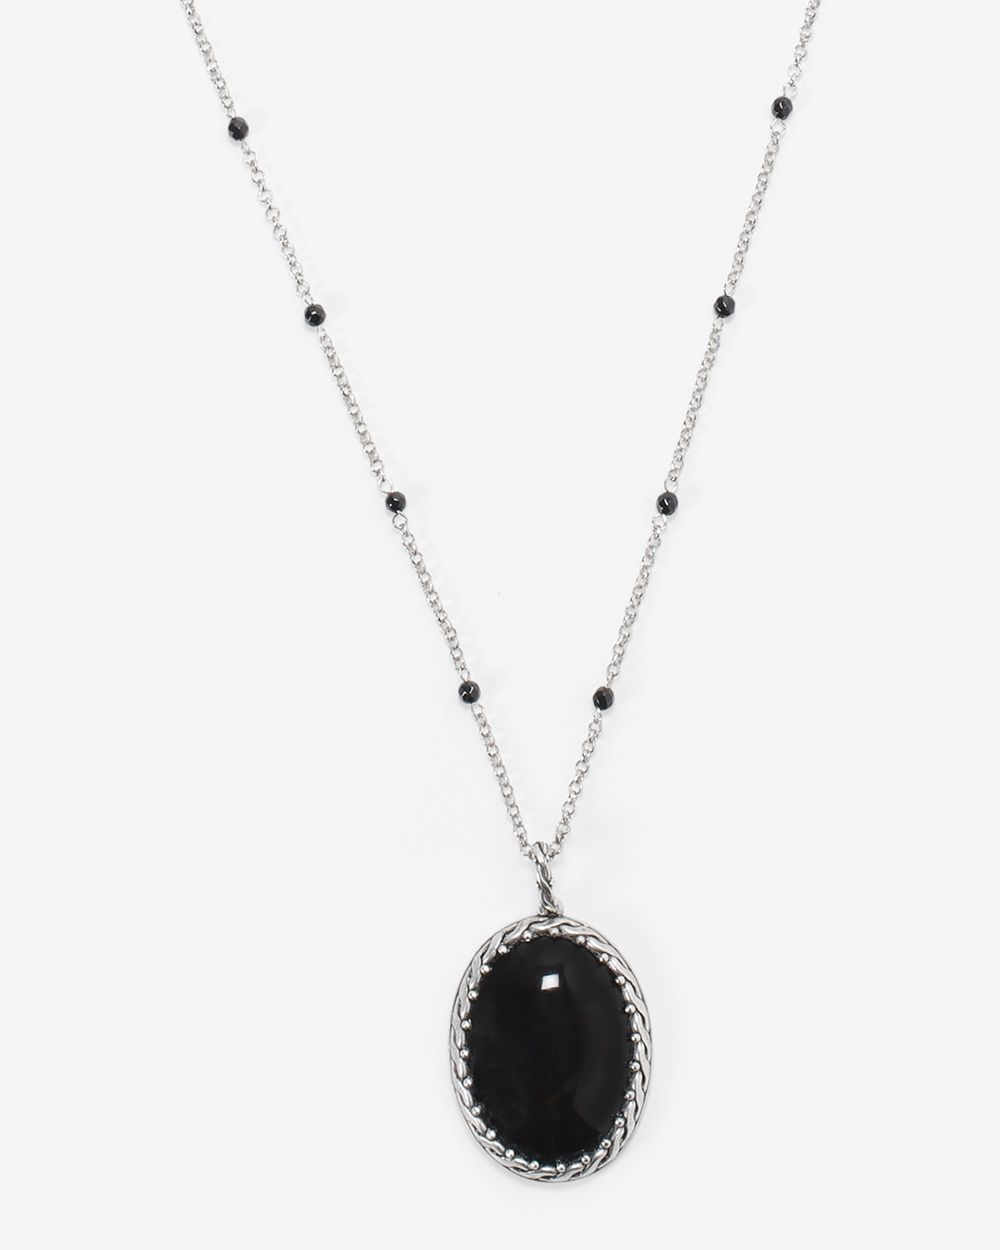 Womenus black onyx oval pendant necklace by whbm womenus boots